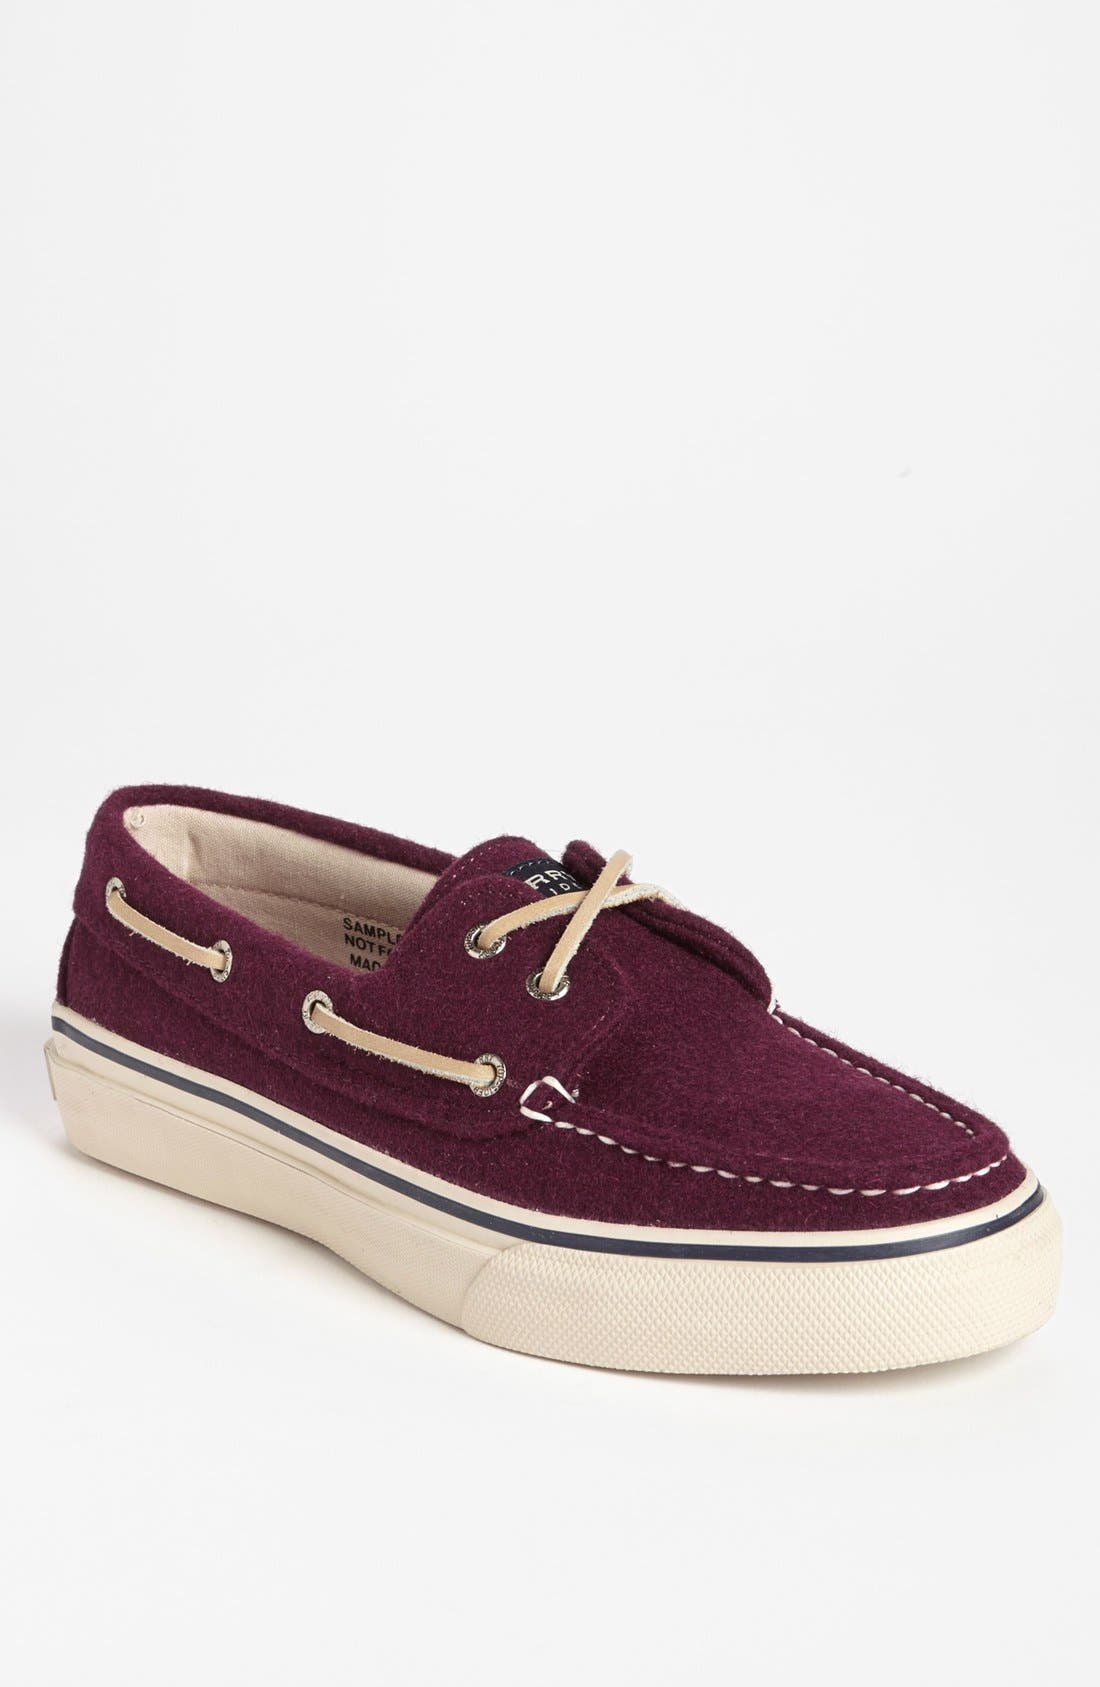 Alternate Image 1 Selected - Sperry Top-Sider® 'Bahama' Wool Boat Shoe